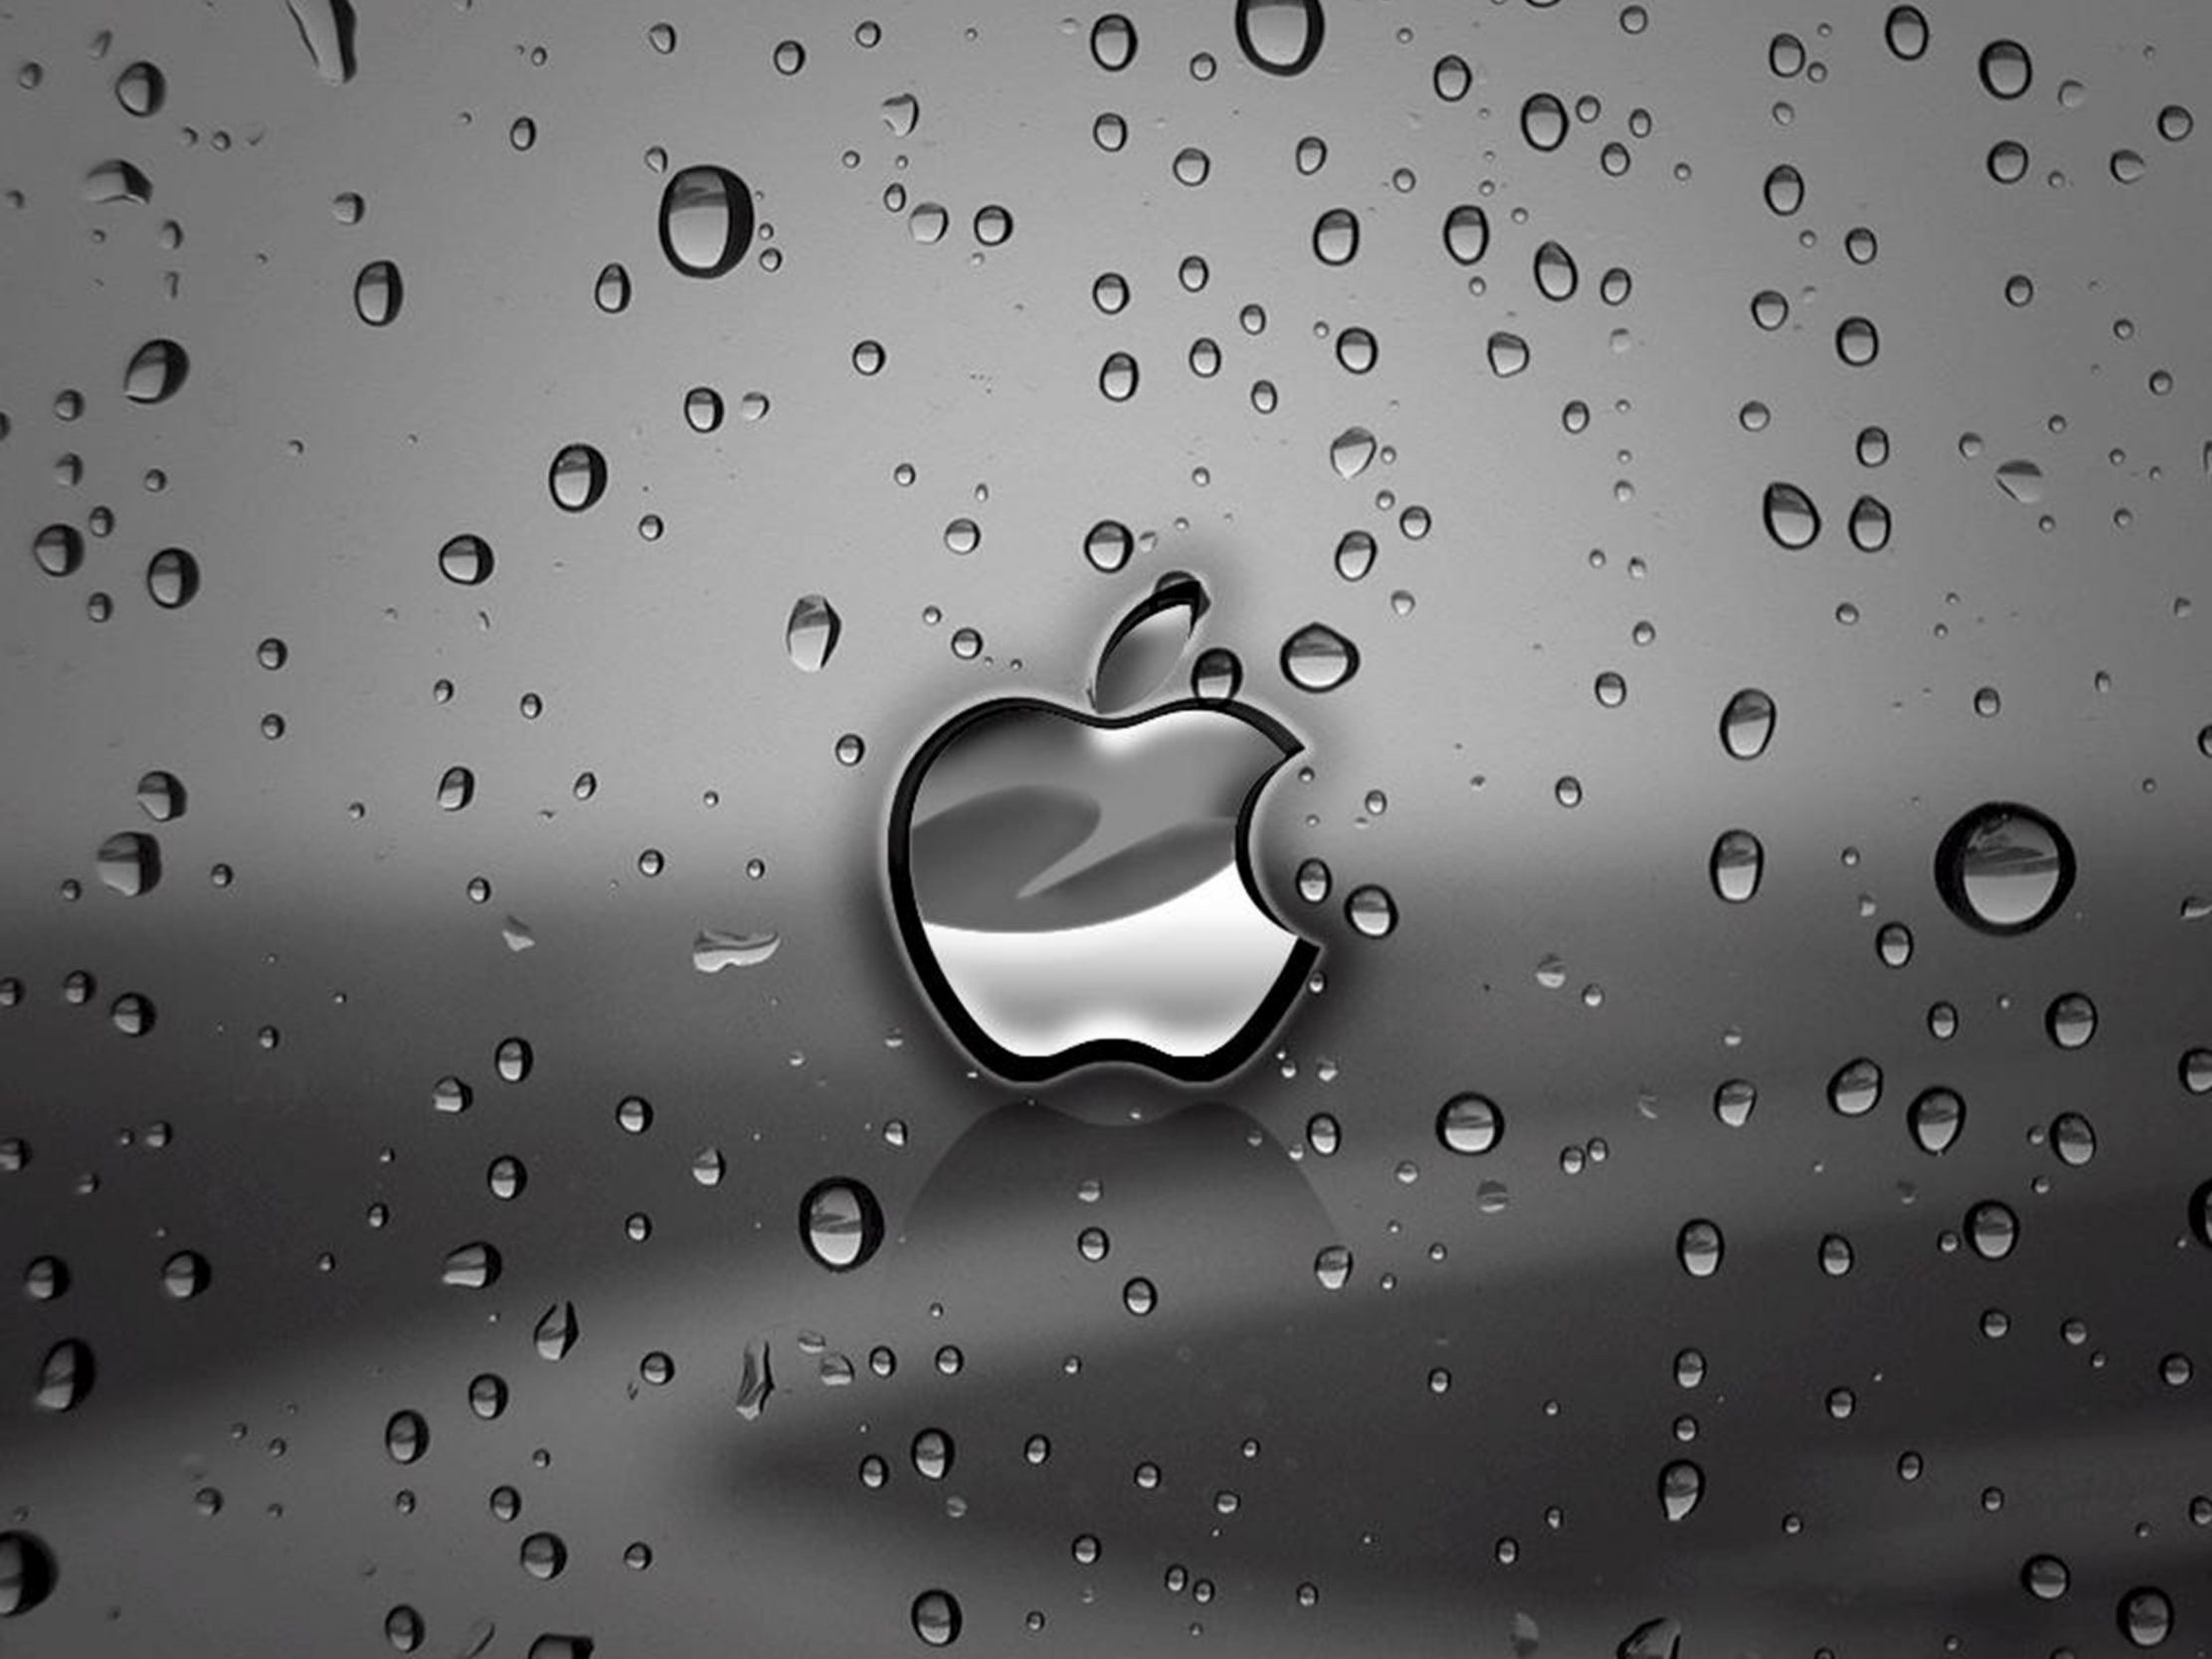 2224x1668 iPad Pro wallpapers Apple Rain Ipad Wallpaper 2224x1668 pixels resolution